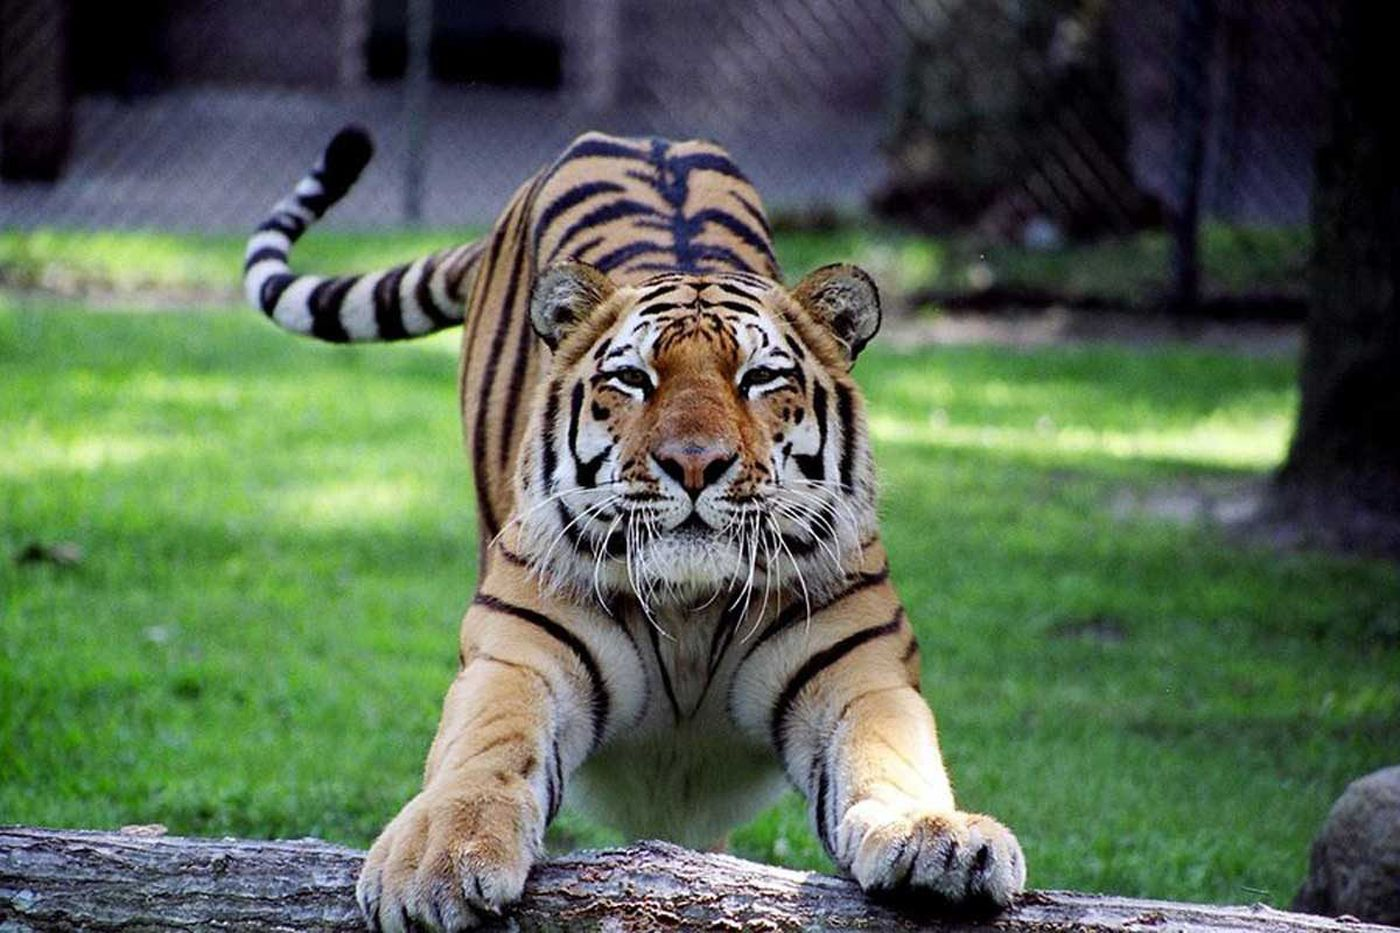 Shore zoo's tiger is euthanized